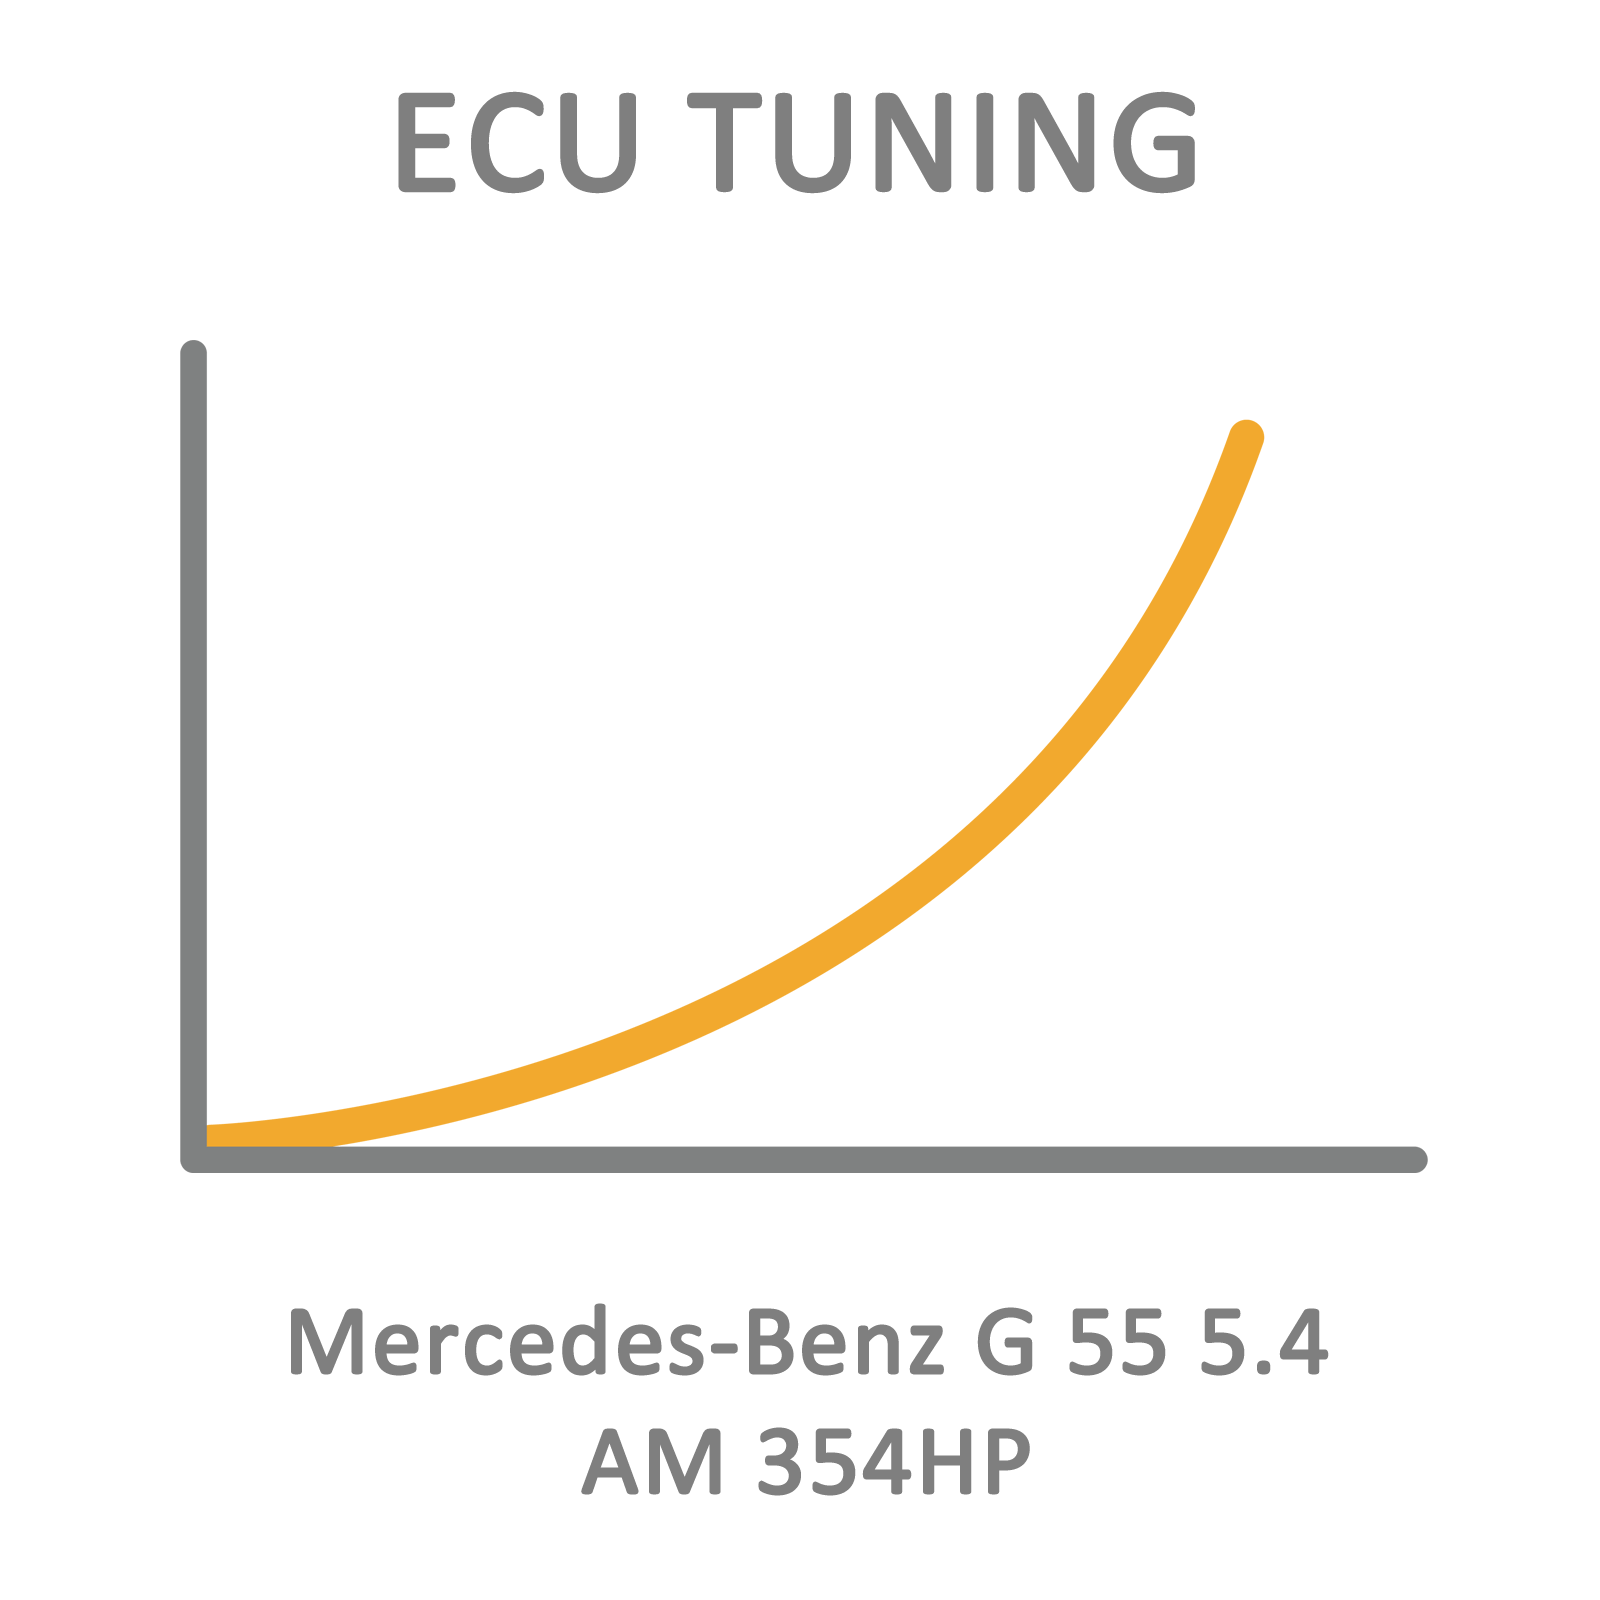 Mercedes-Benz G 55 5.4 AM 354HP ECU Tuning Remapping